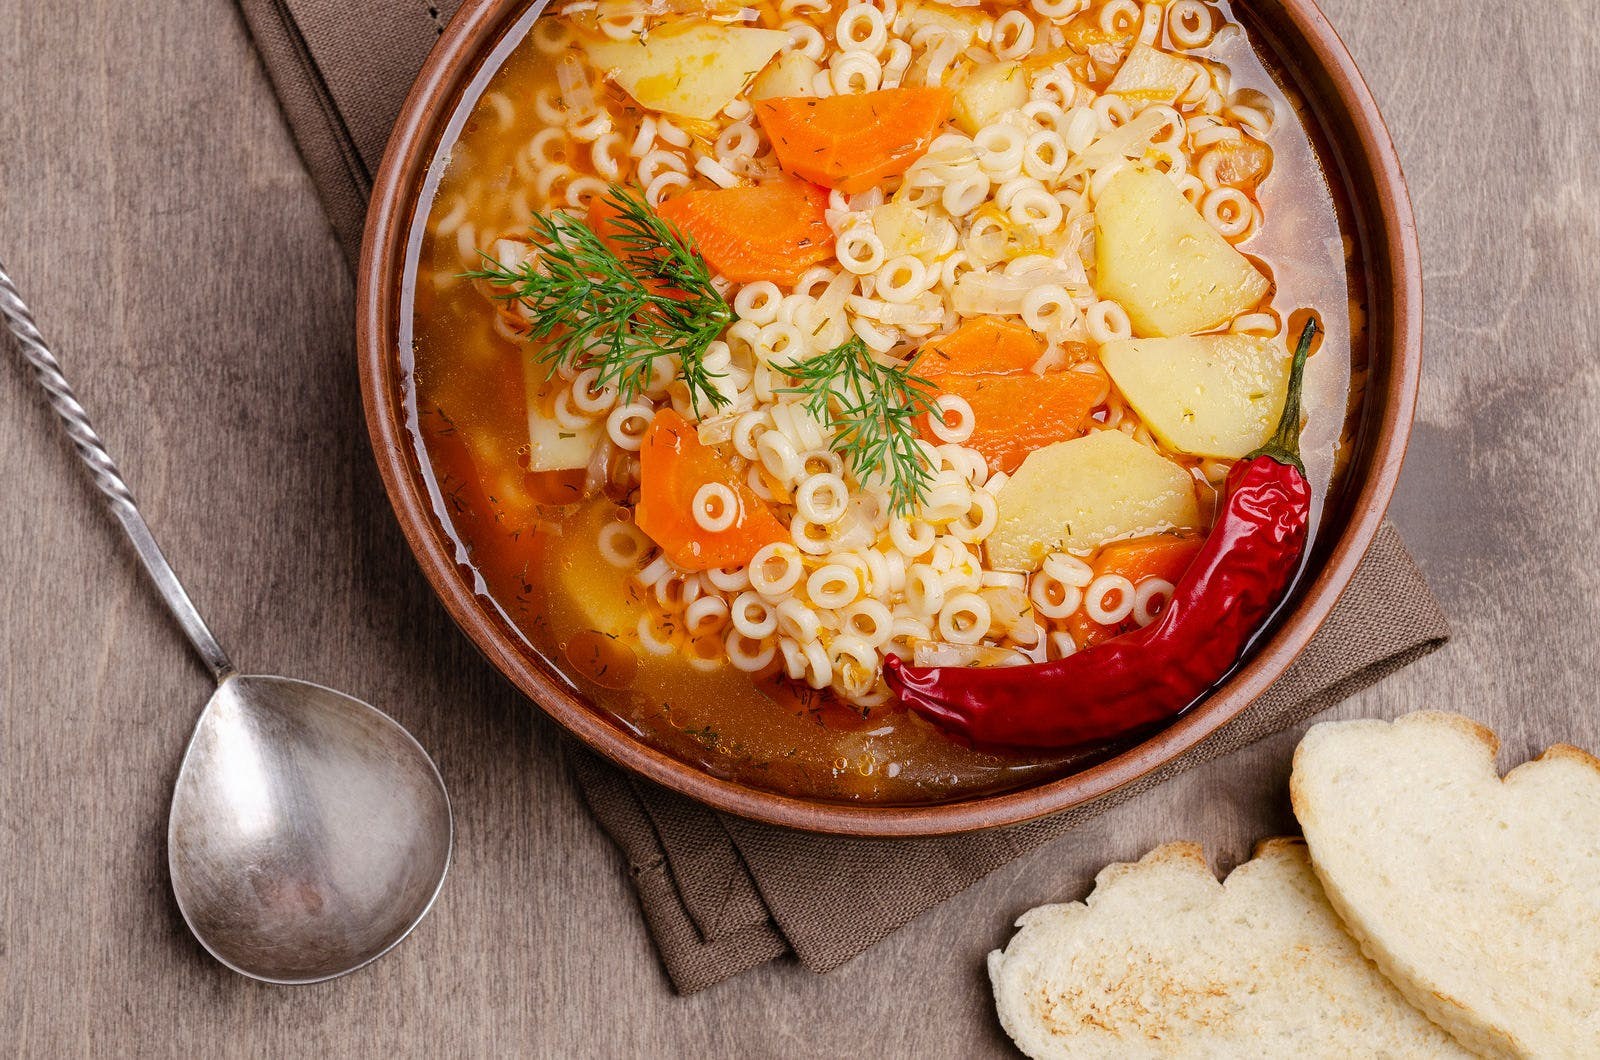 Thick vegetable soup with pasta in a ceramic bowl on a wooden background. Selective focus.